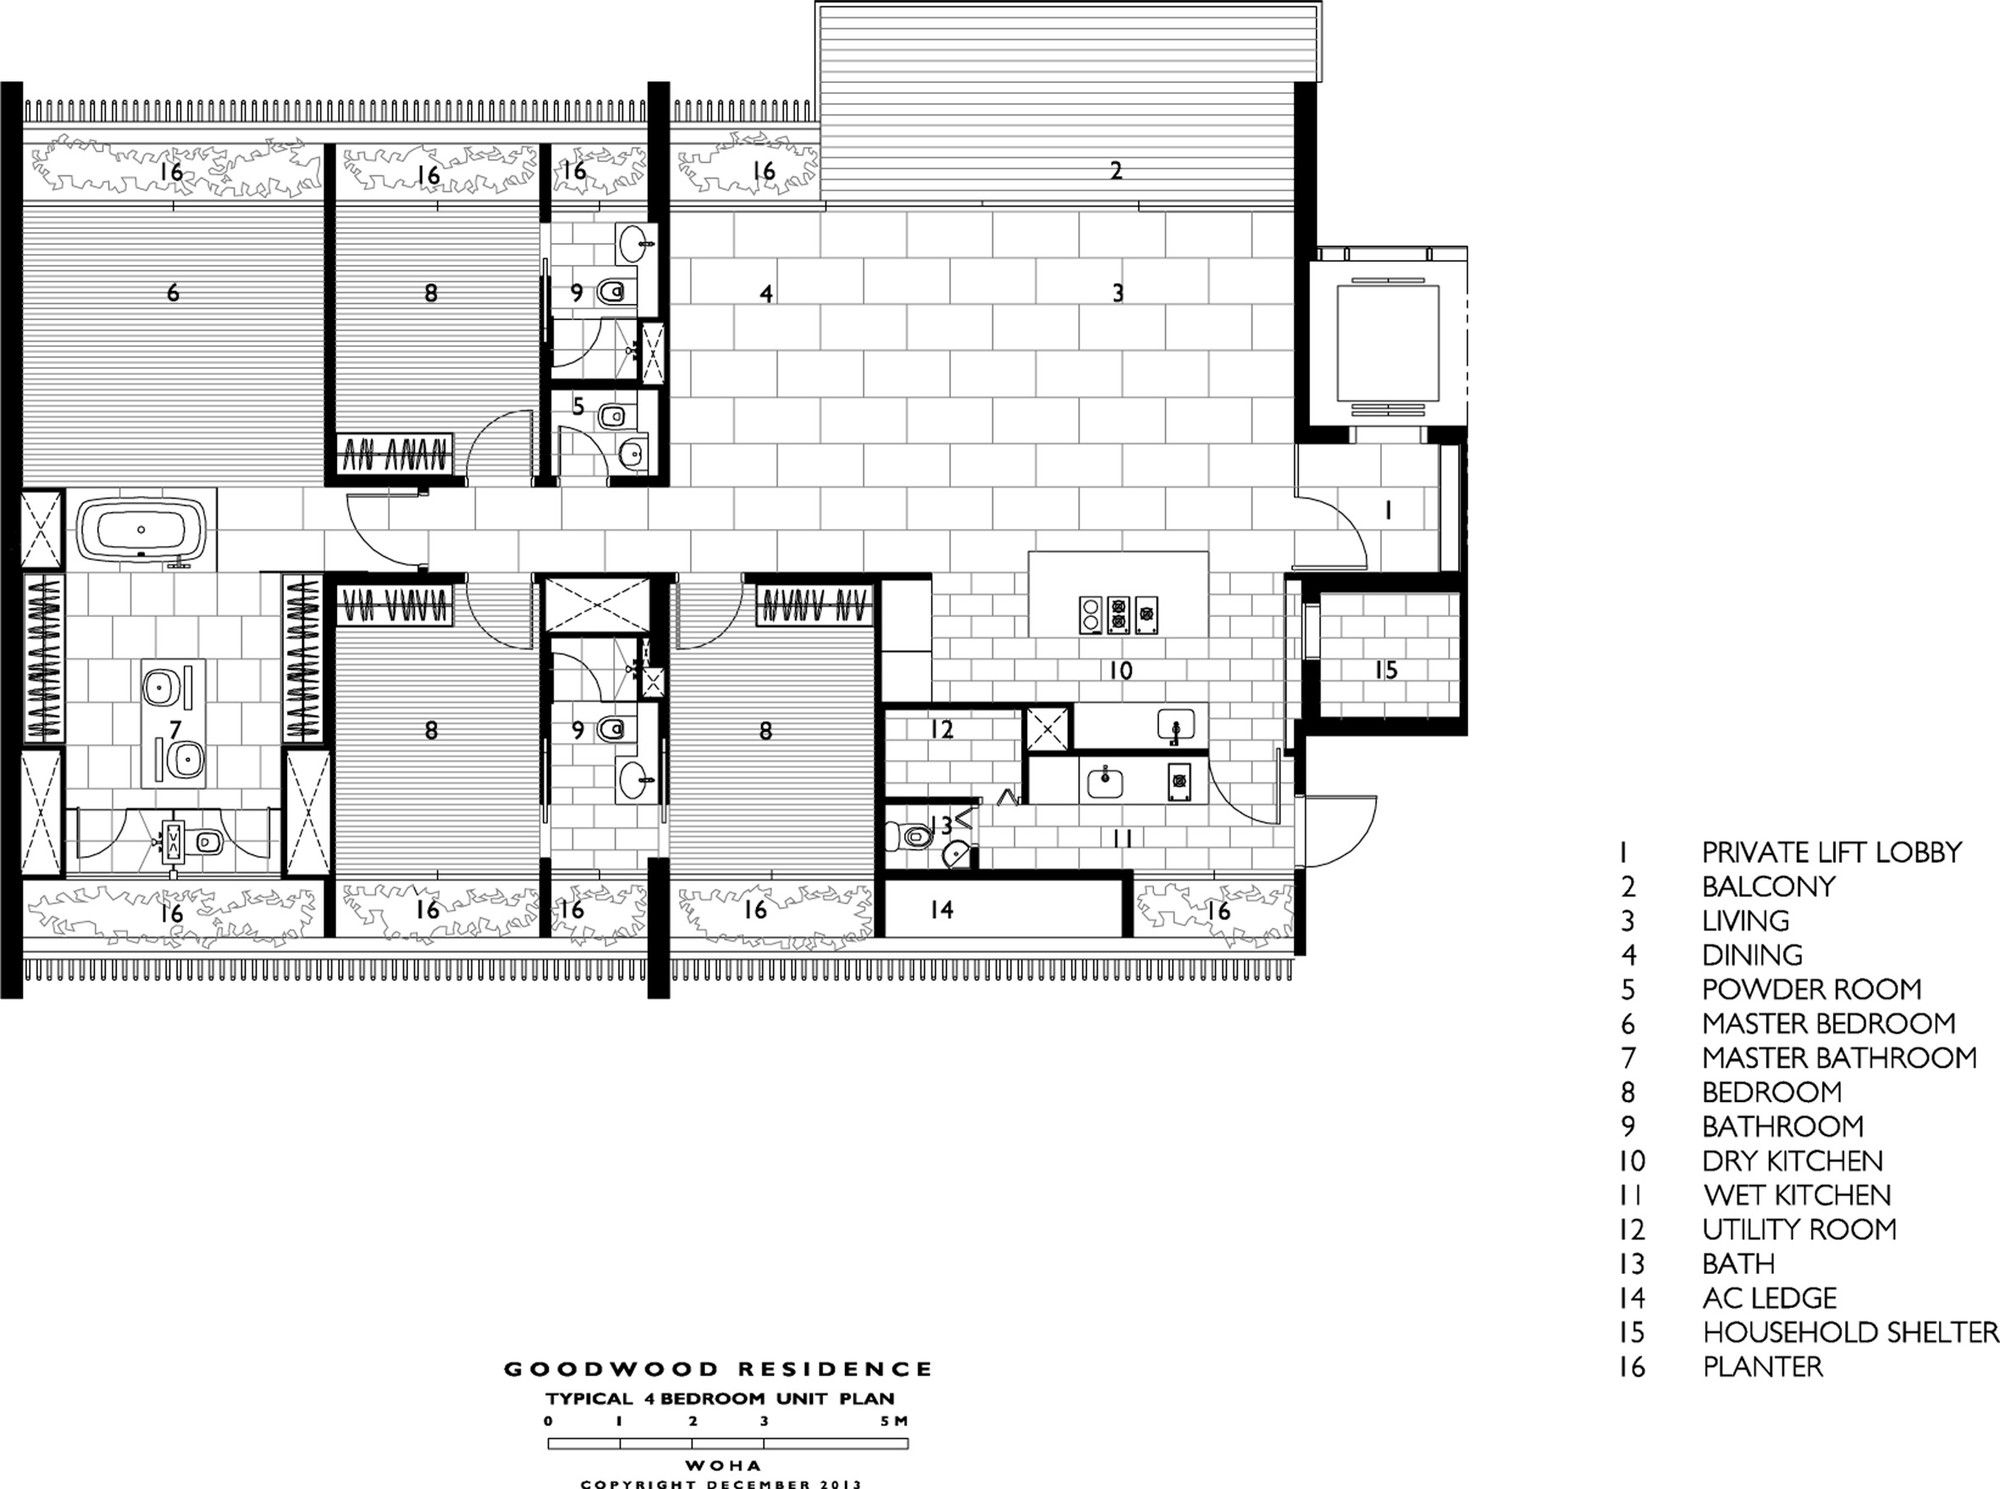 Gallery Of Goodwood Residence Woha 16 Apartment